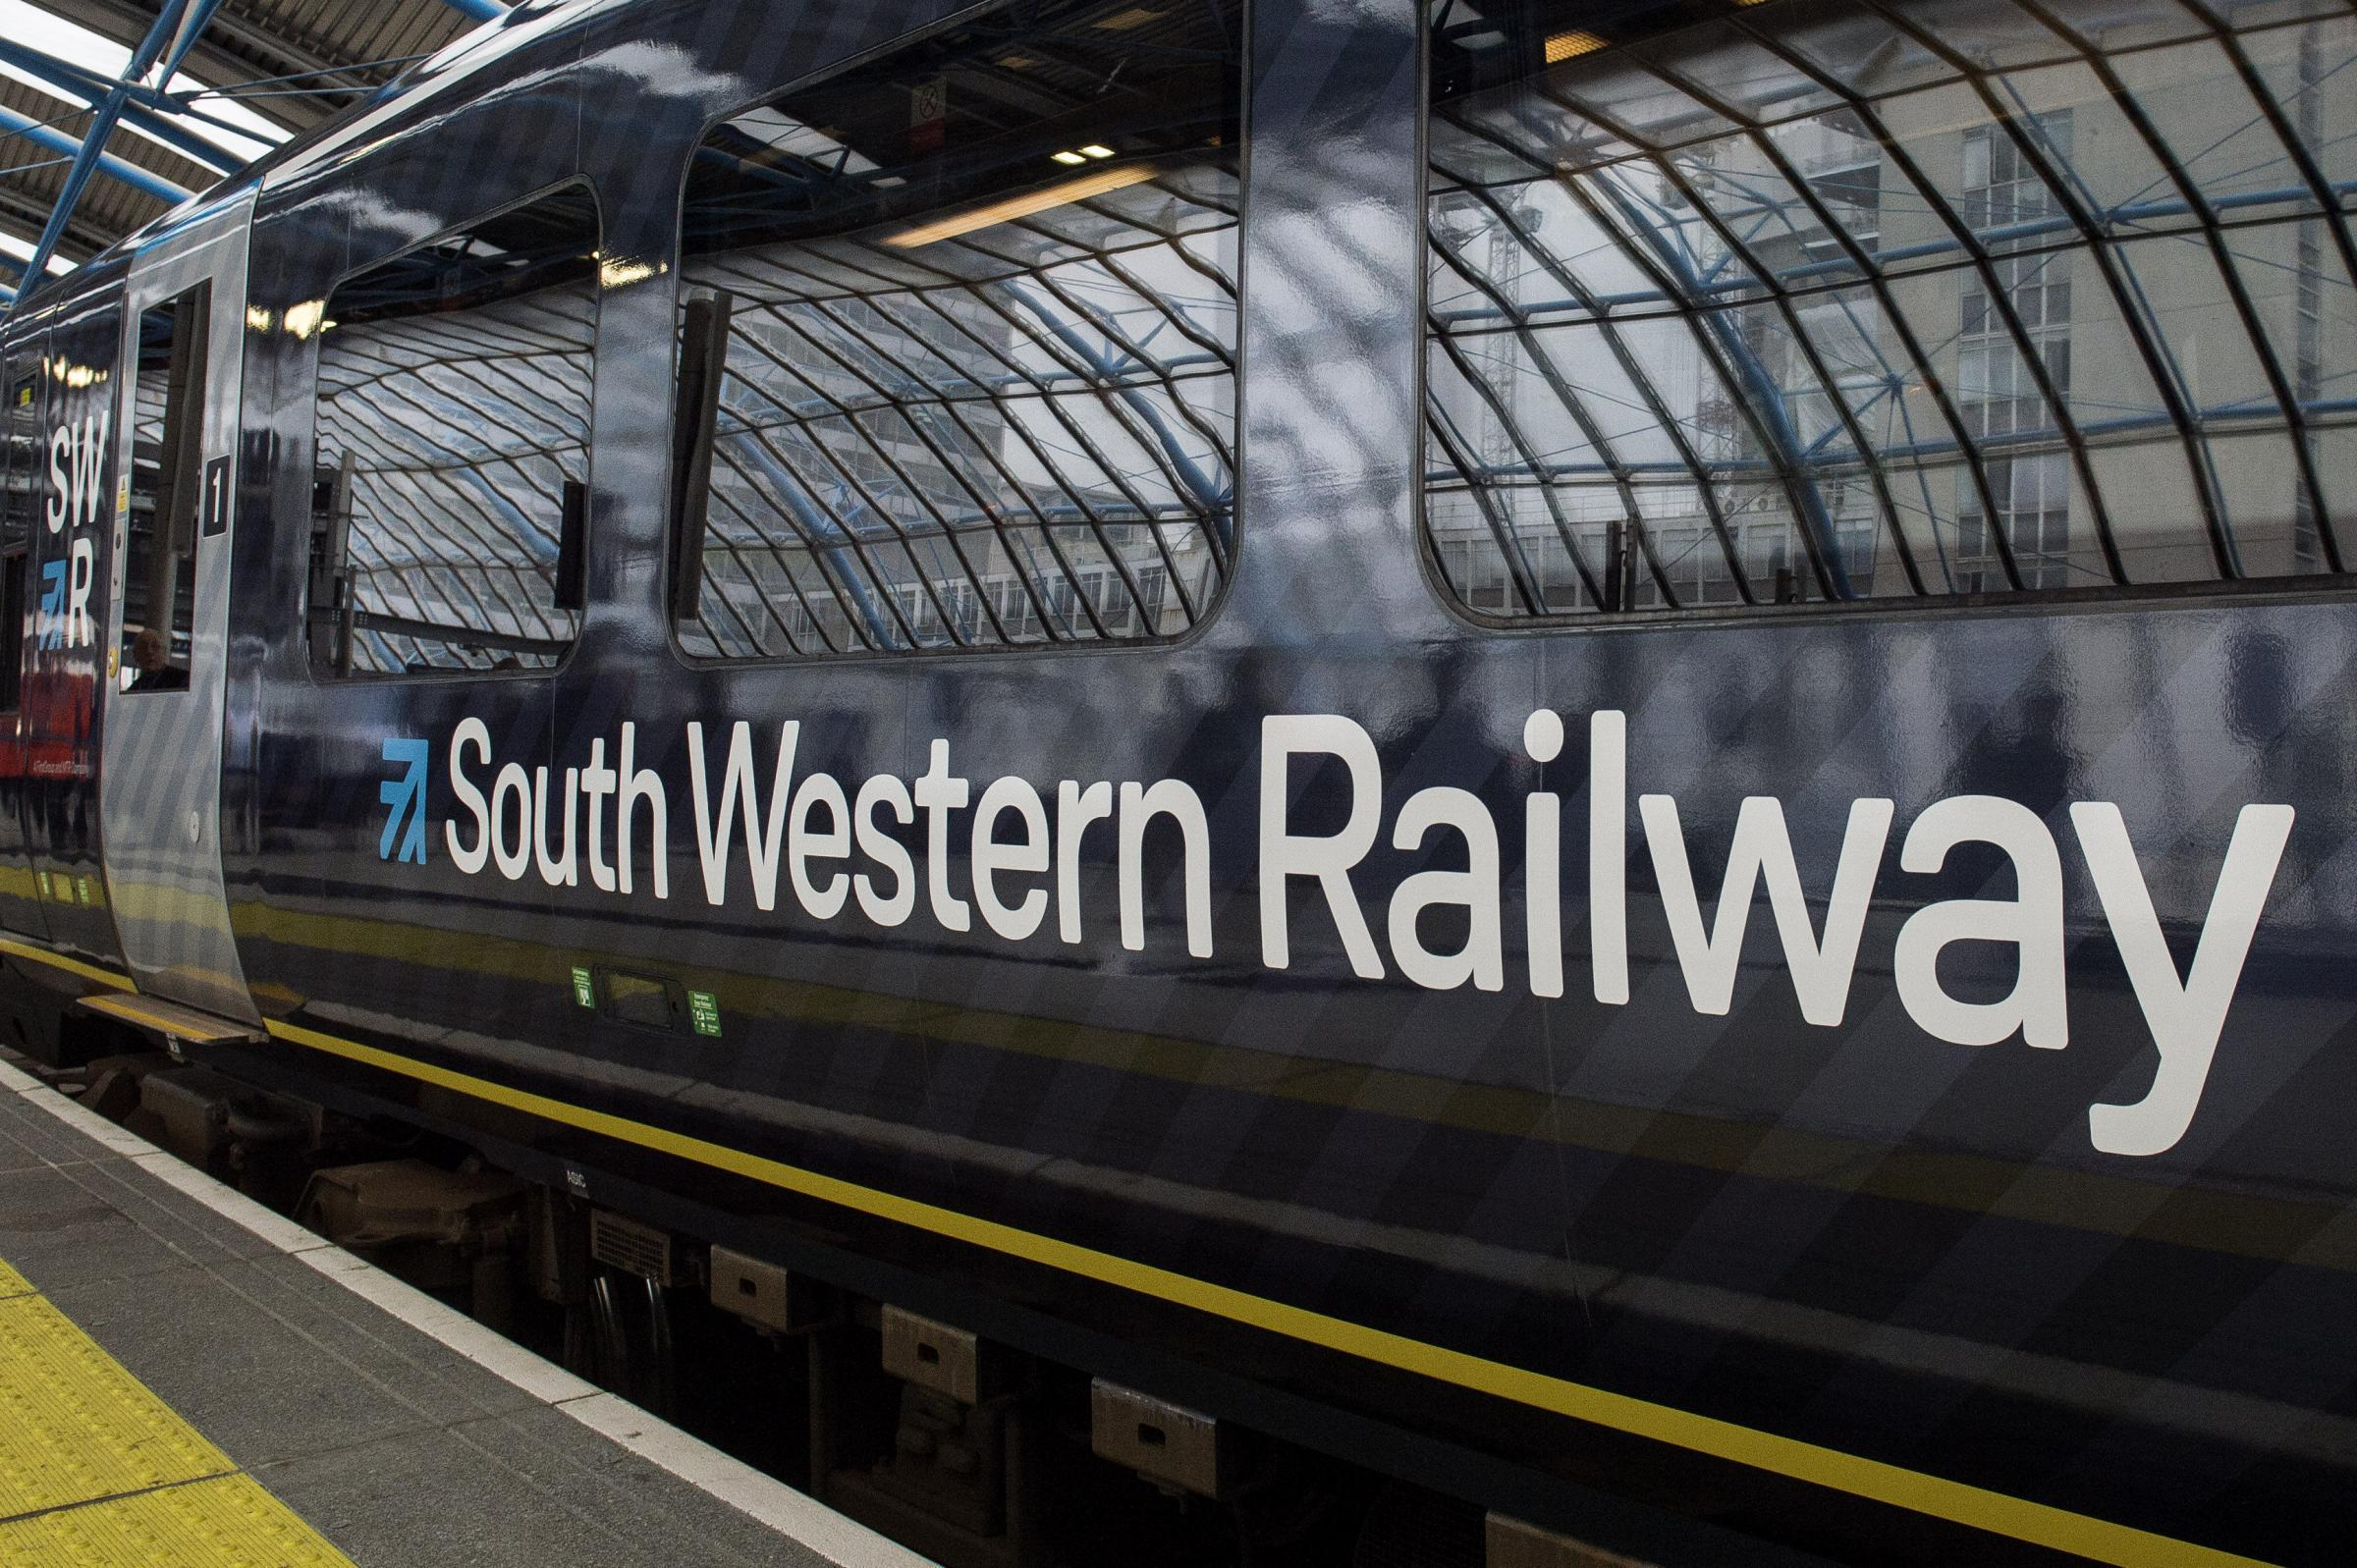 Strike action on South Western Railway on Friday and Saturday